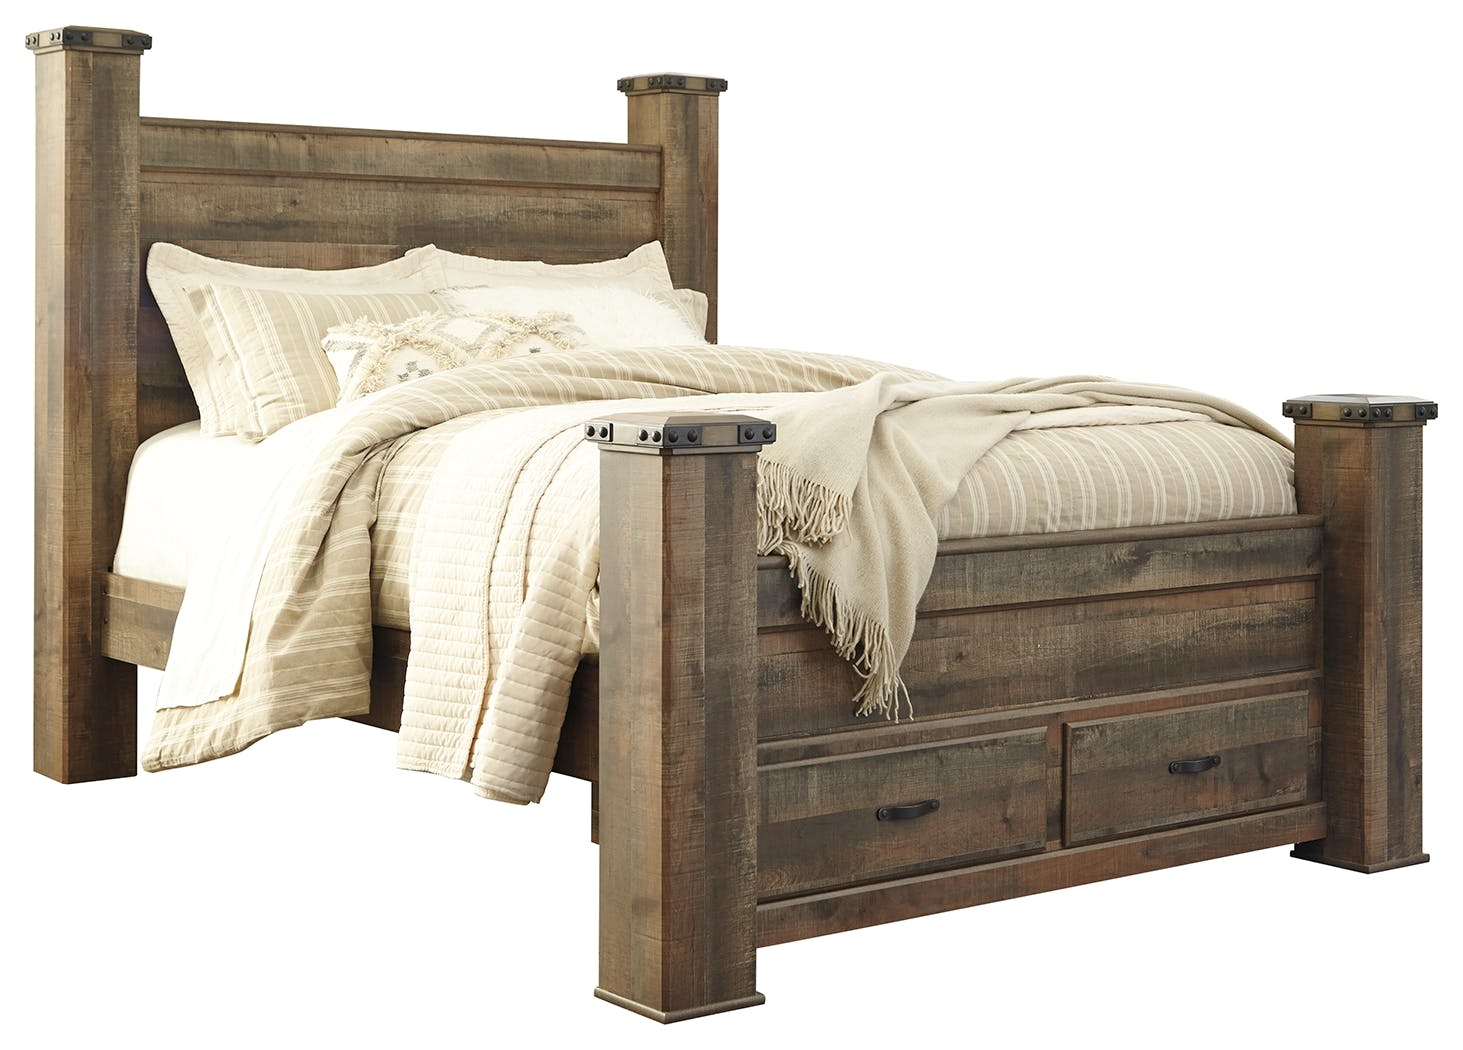 Signature Design By Ashley Bedroom Trinell Queen Poster Bed With 2 Storage Drawers B446b41